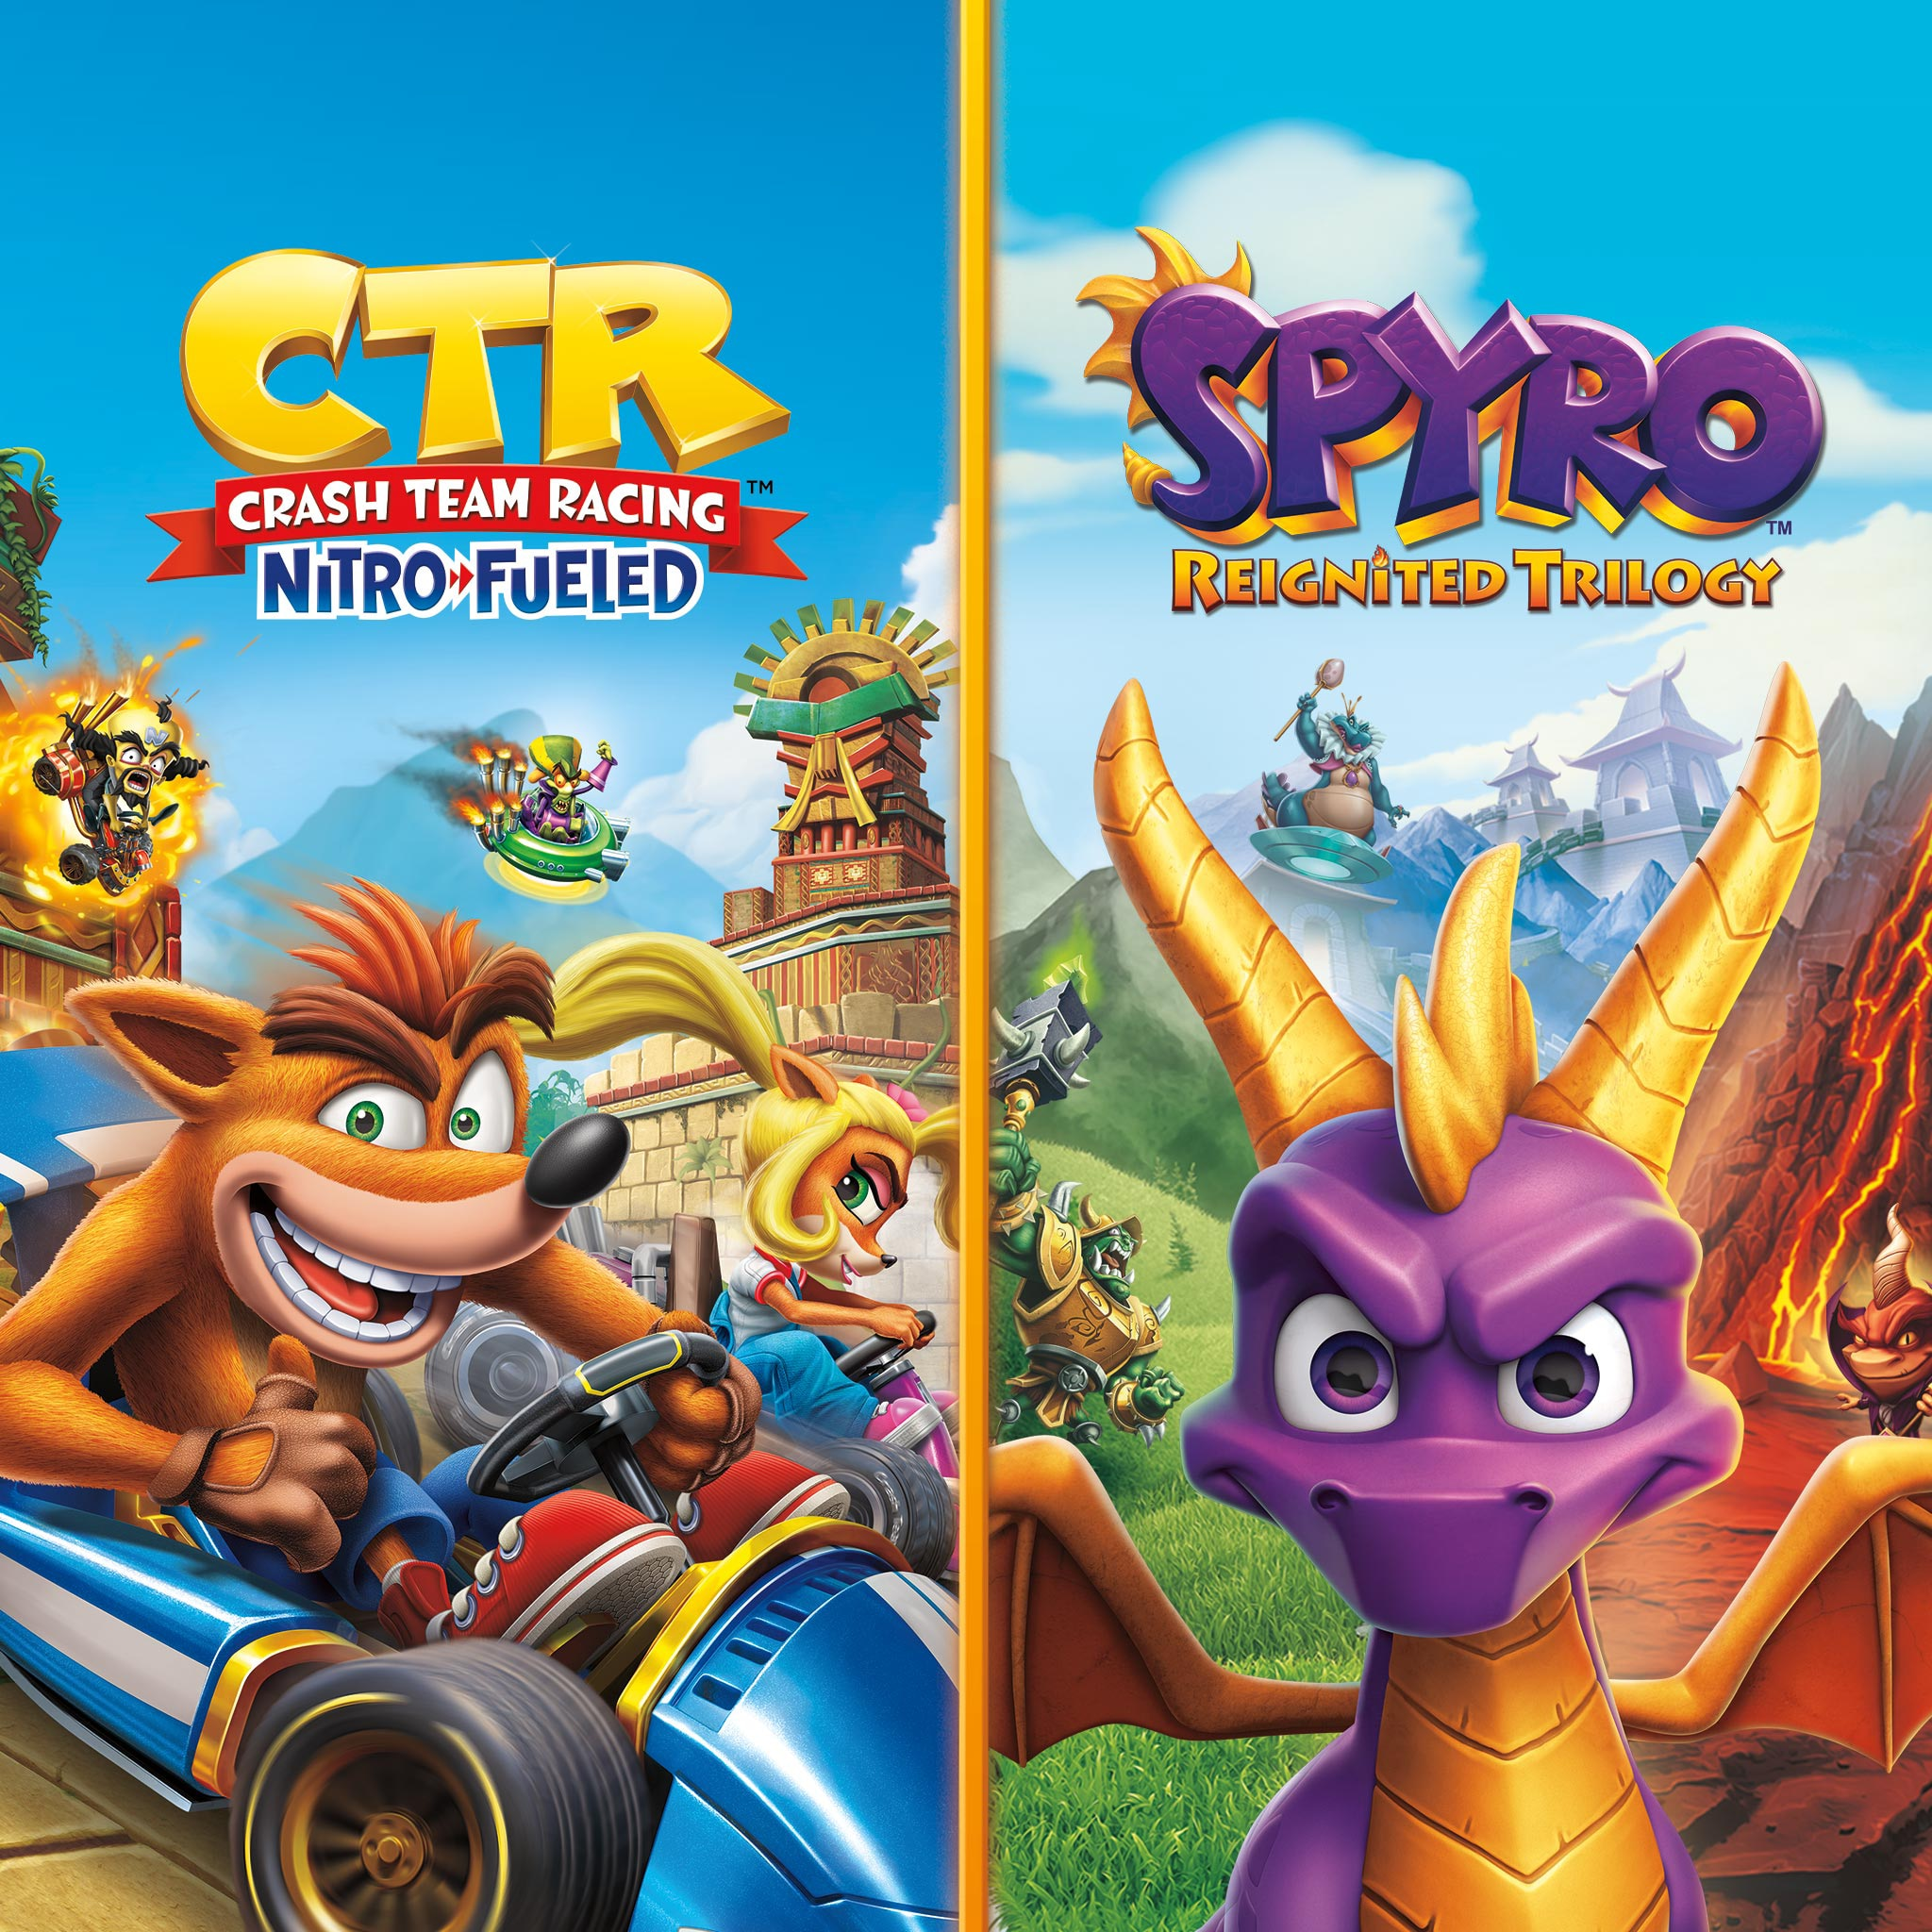 Bundle Crash™ Team Racing Nitro-Fueled + Spyro™